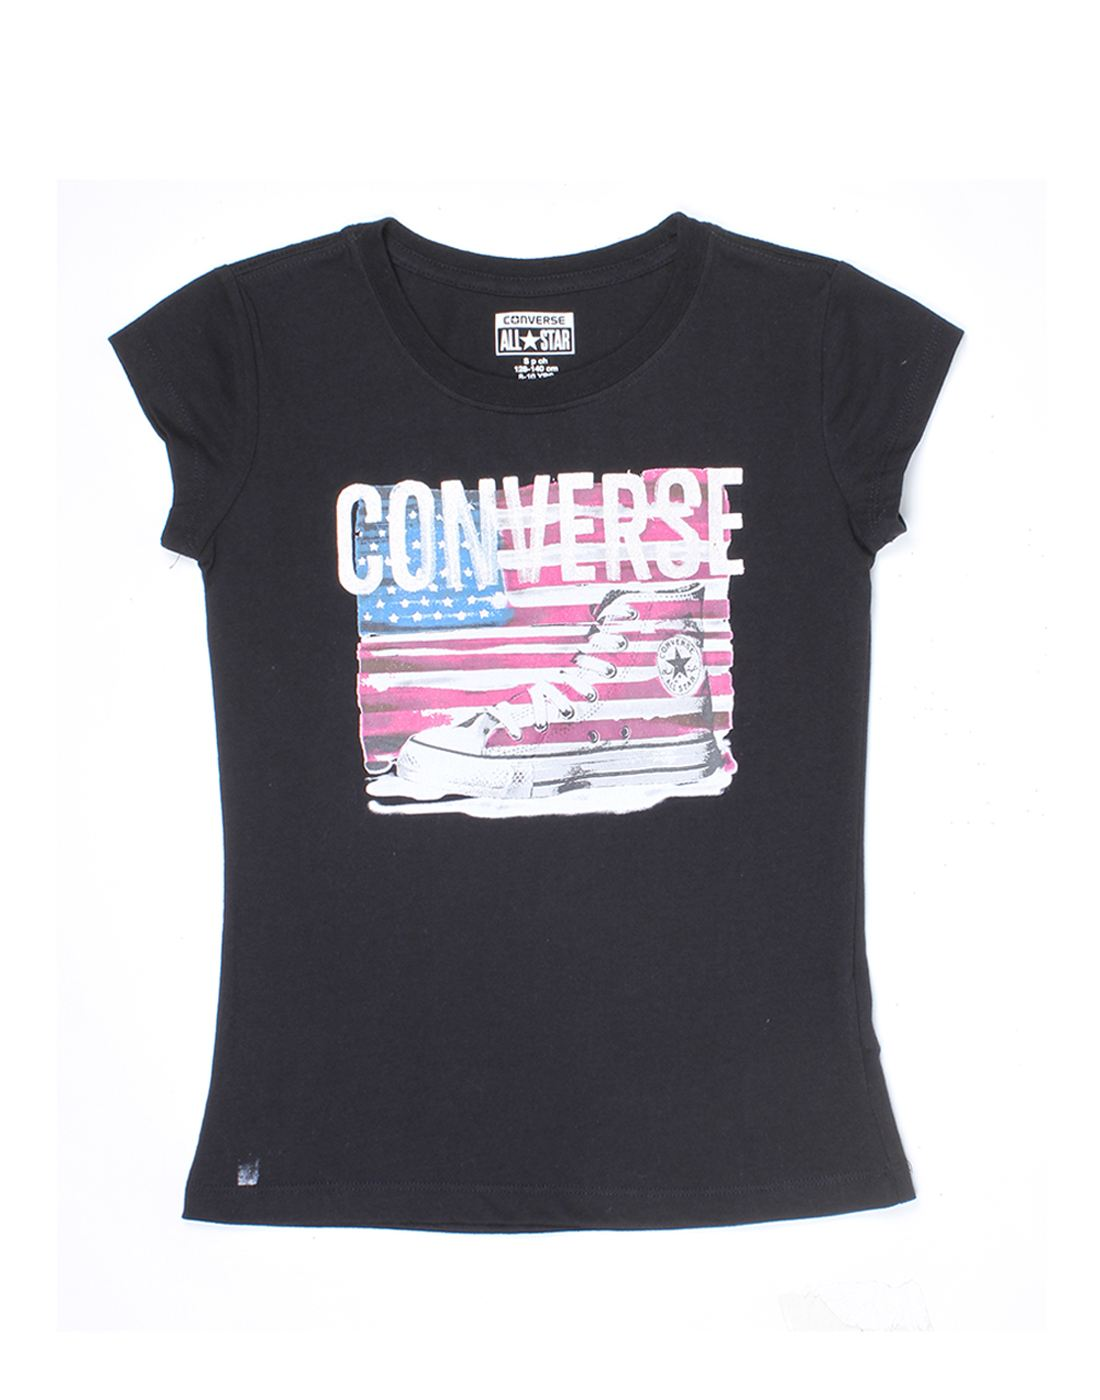 Converse Girls Black Top